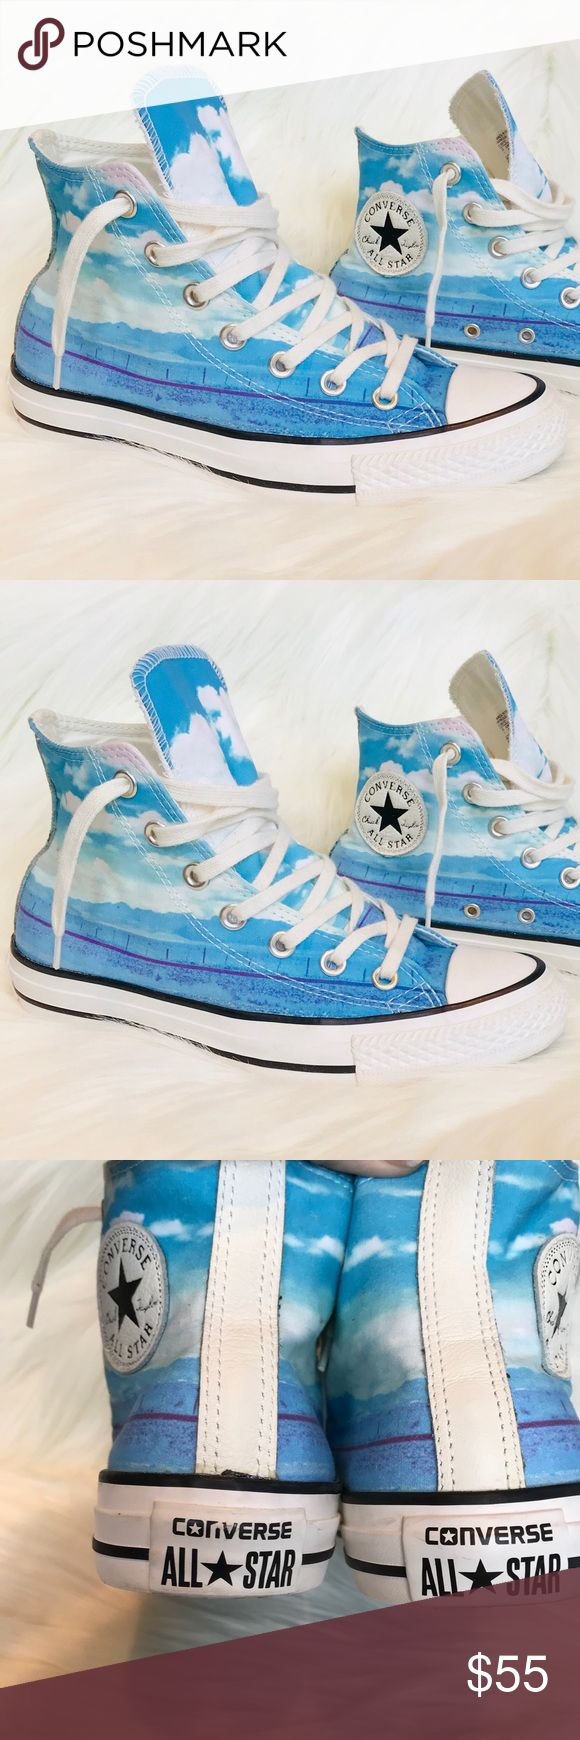 Converse All Star High Tops Print Blue Sky sz7 EUC Converse High Tops Print Blue Sky Women's SZ 7 EUC * All Star Chuck Taylor High Top * Excellent condition * Women's Size 7 * Print Blue Sky Converse Shoes Sneakers